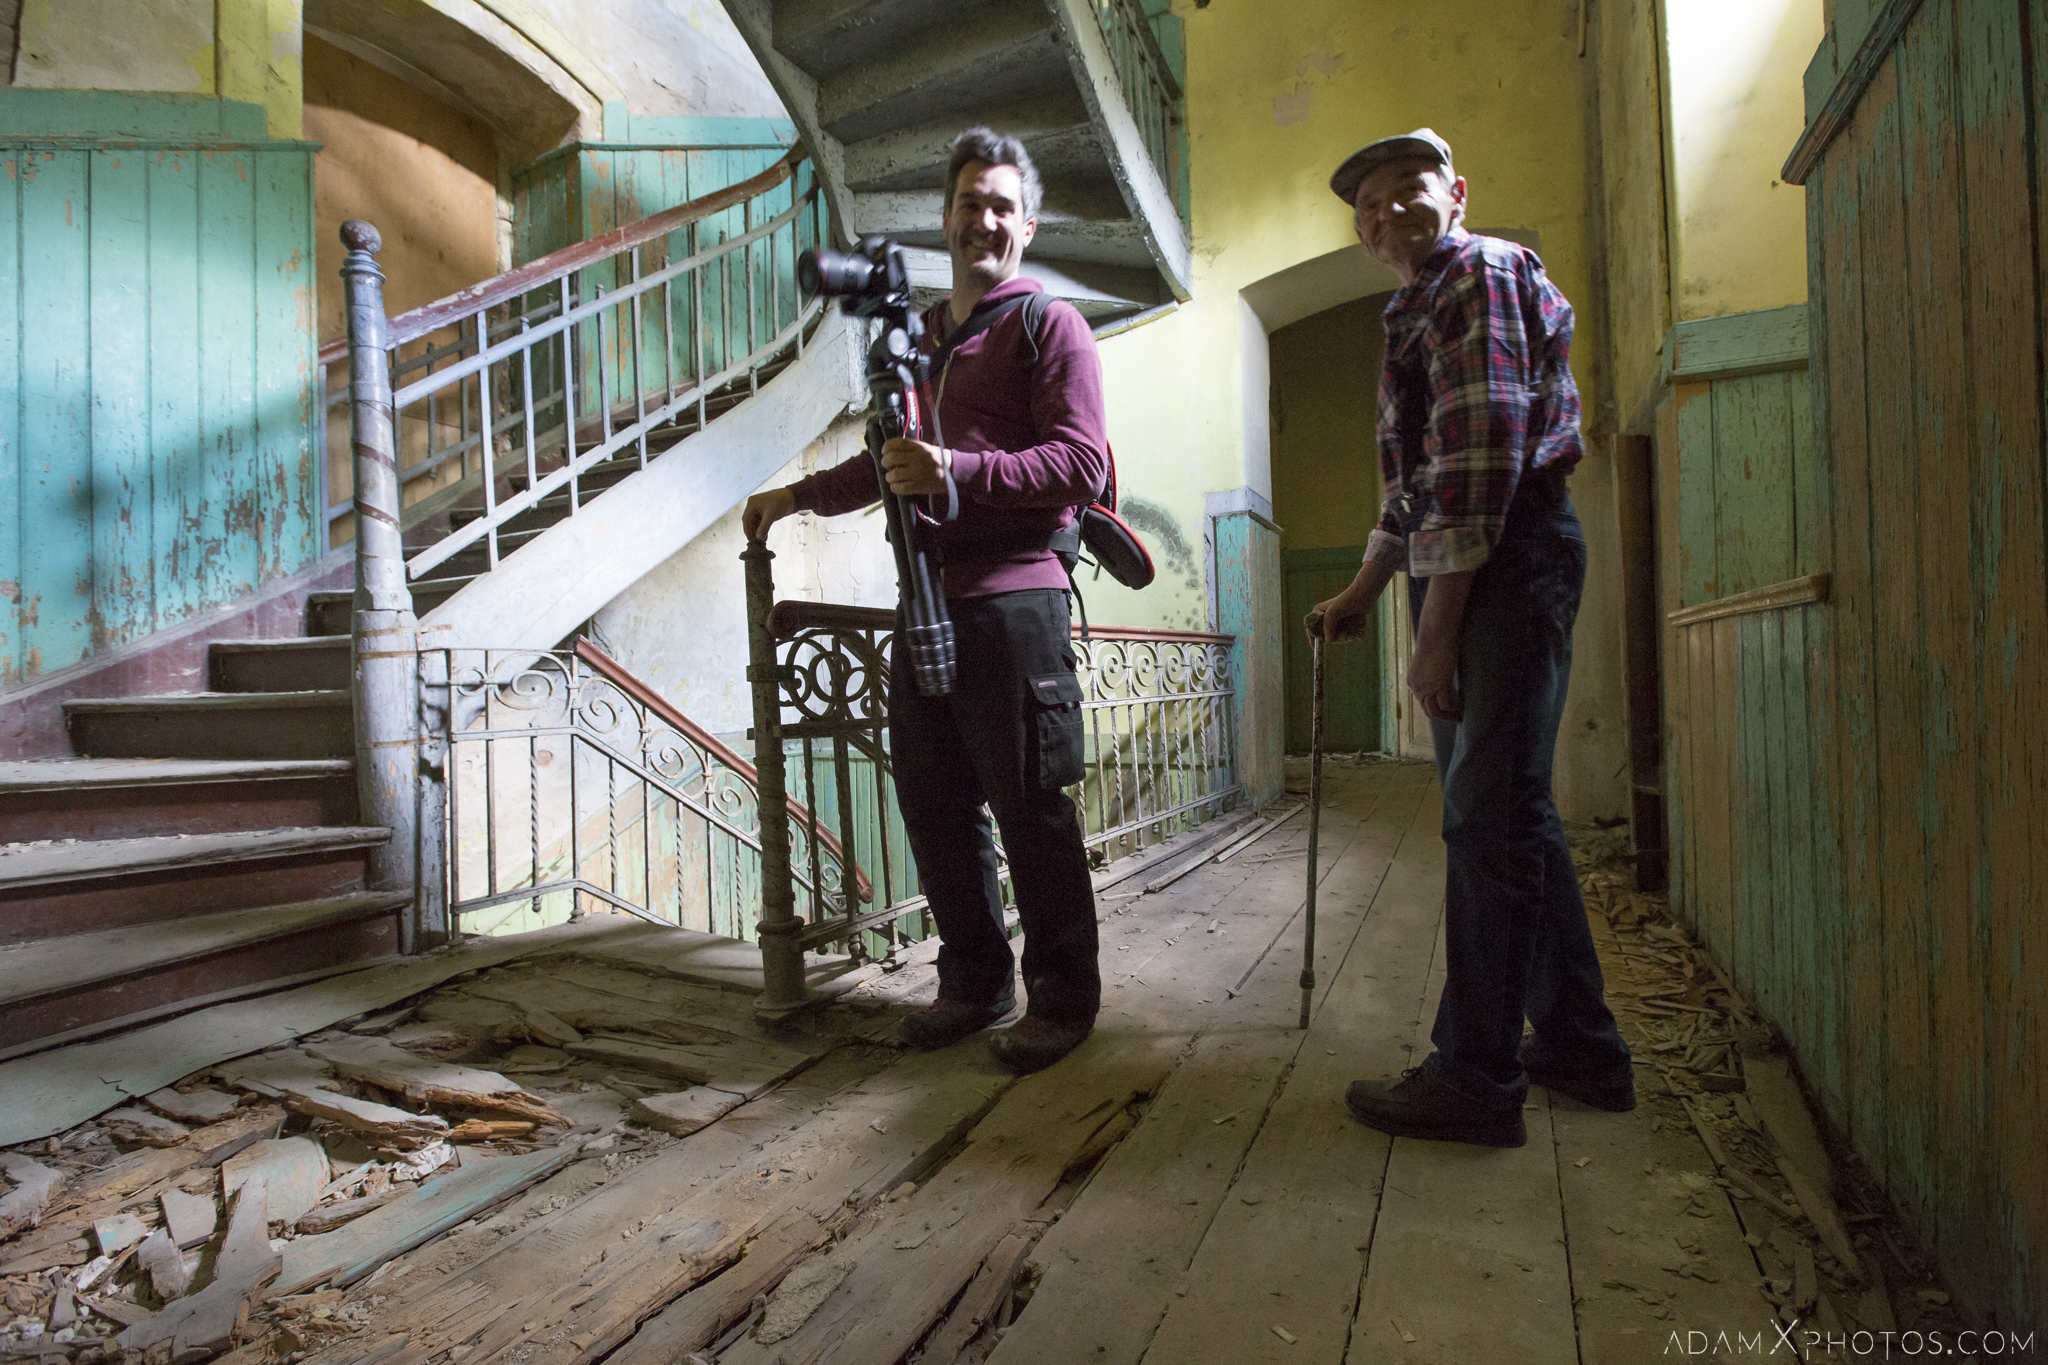 James Kerwin and his Dad Hunter's castle Moja Wola Pałac Myśliwski w Mojej Woli Urbex Poland Adam X Urban Exploration Access 2016 Abandoned decay lost forgotten derelict location haunting eerie